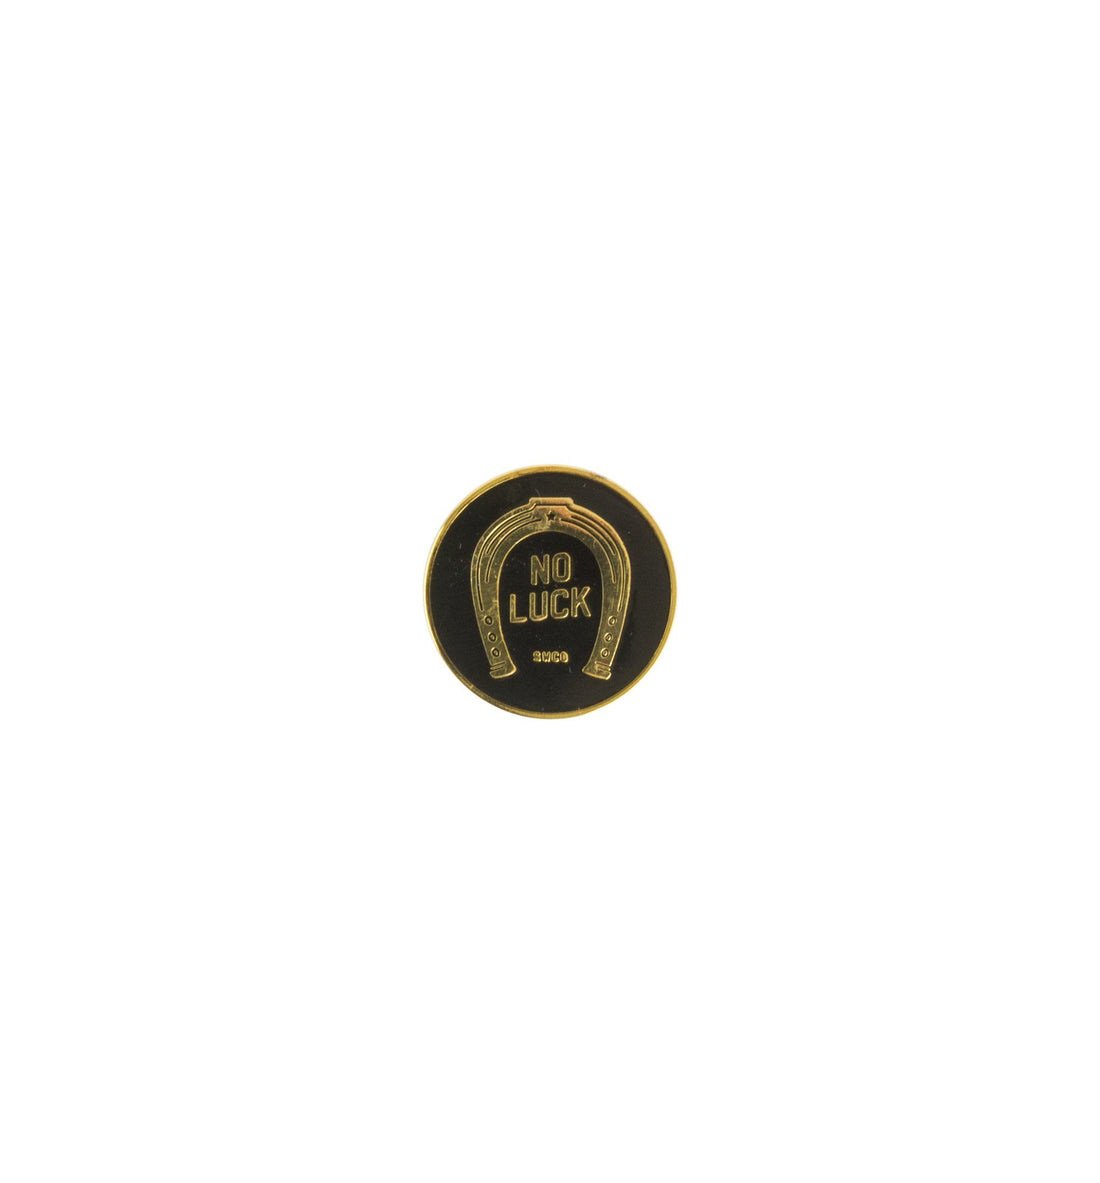 Sidewinder Co. No Luck Pin - Stickers/Pins/Patches - Iron and Resin